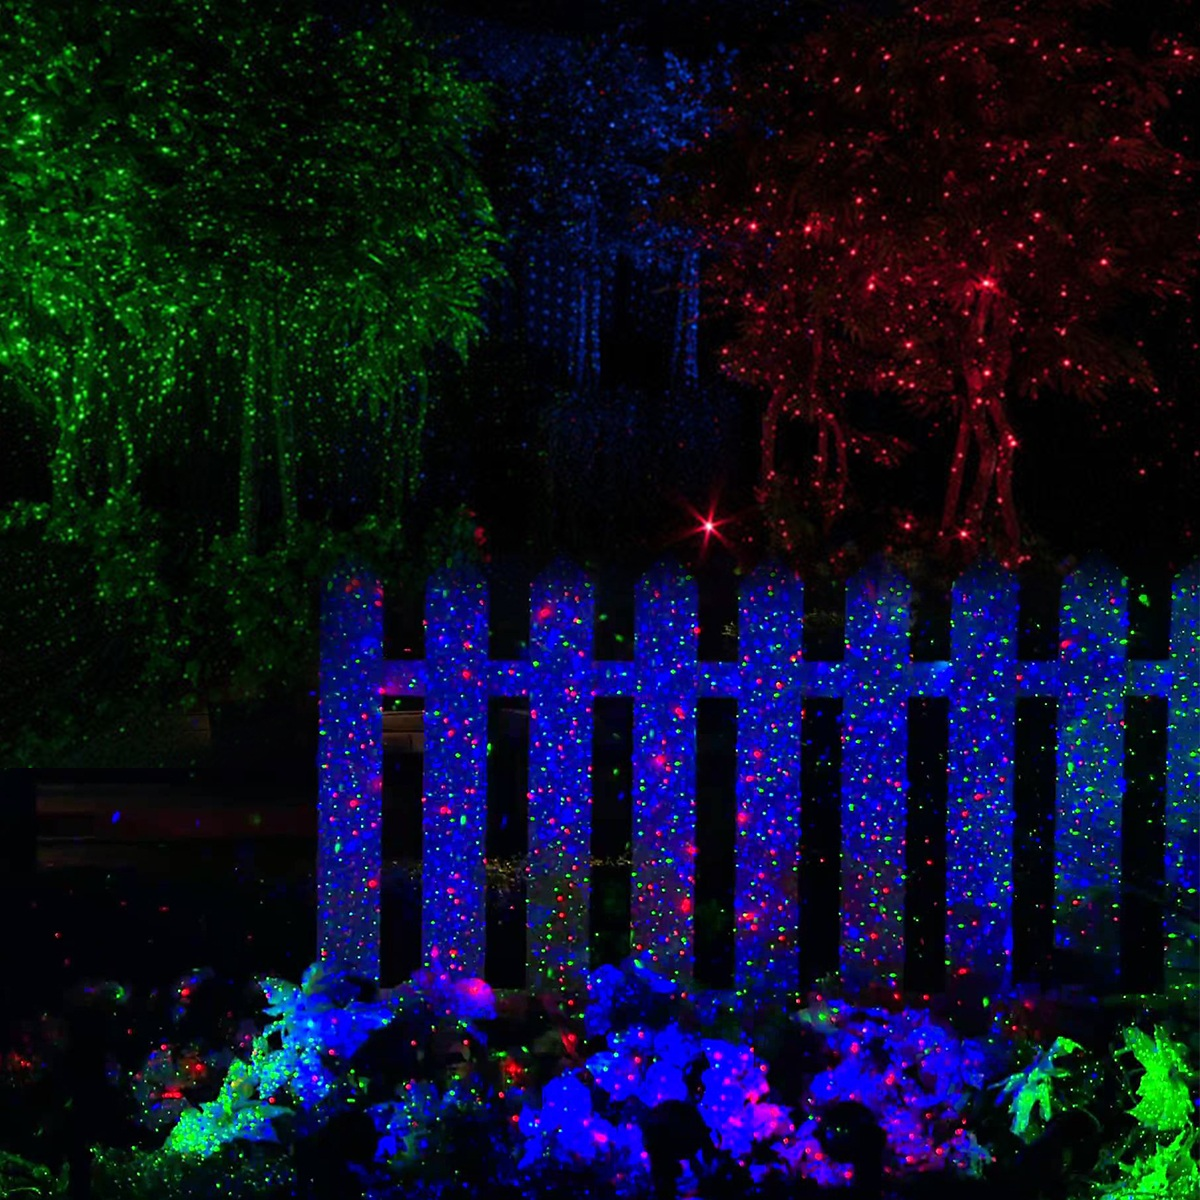 rgb laser projektor garten au enbeleuchtung weihnachten strahler w fernbedienung ebay. Black Bedroom Furniture Sets. Home Design Ideas